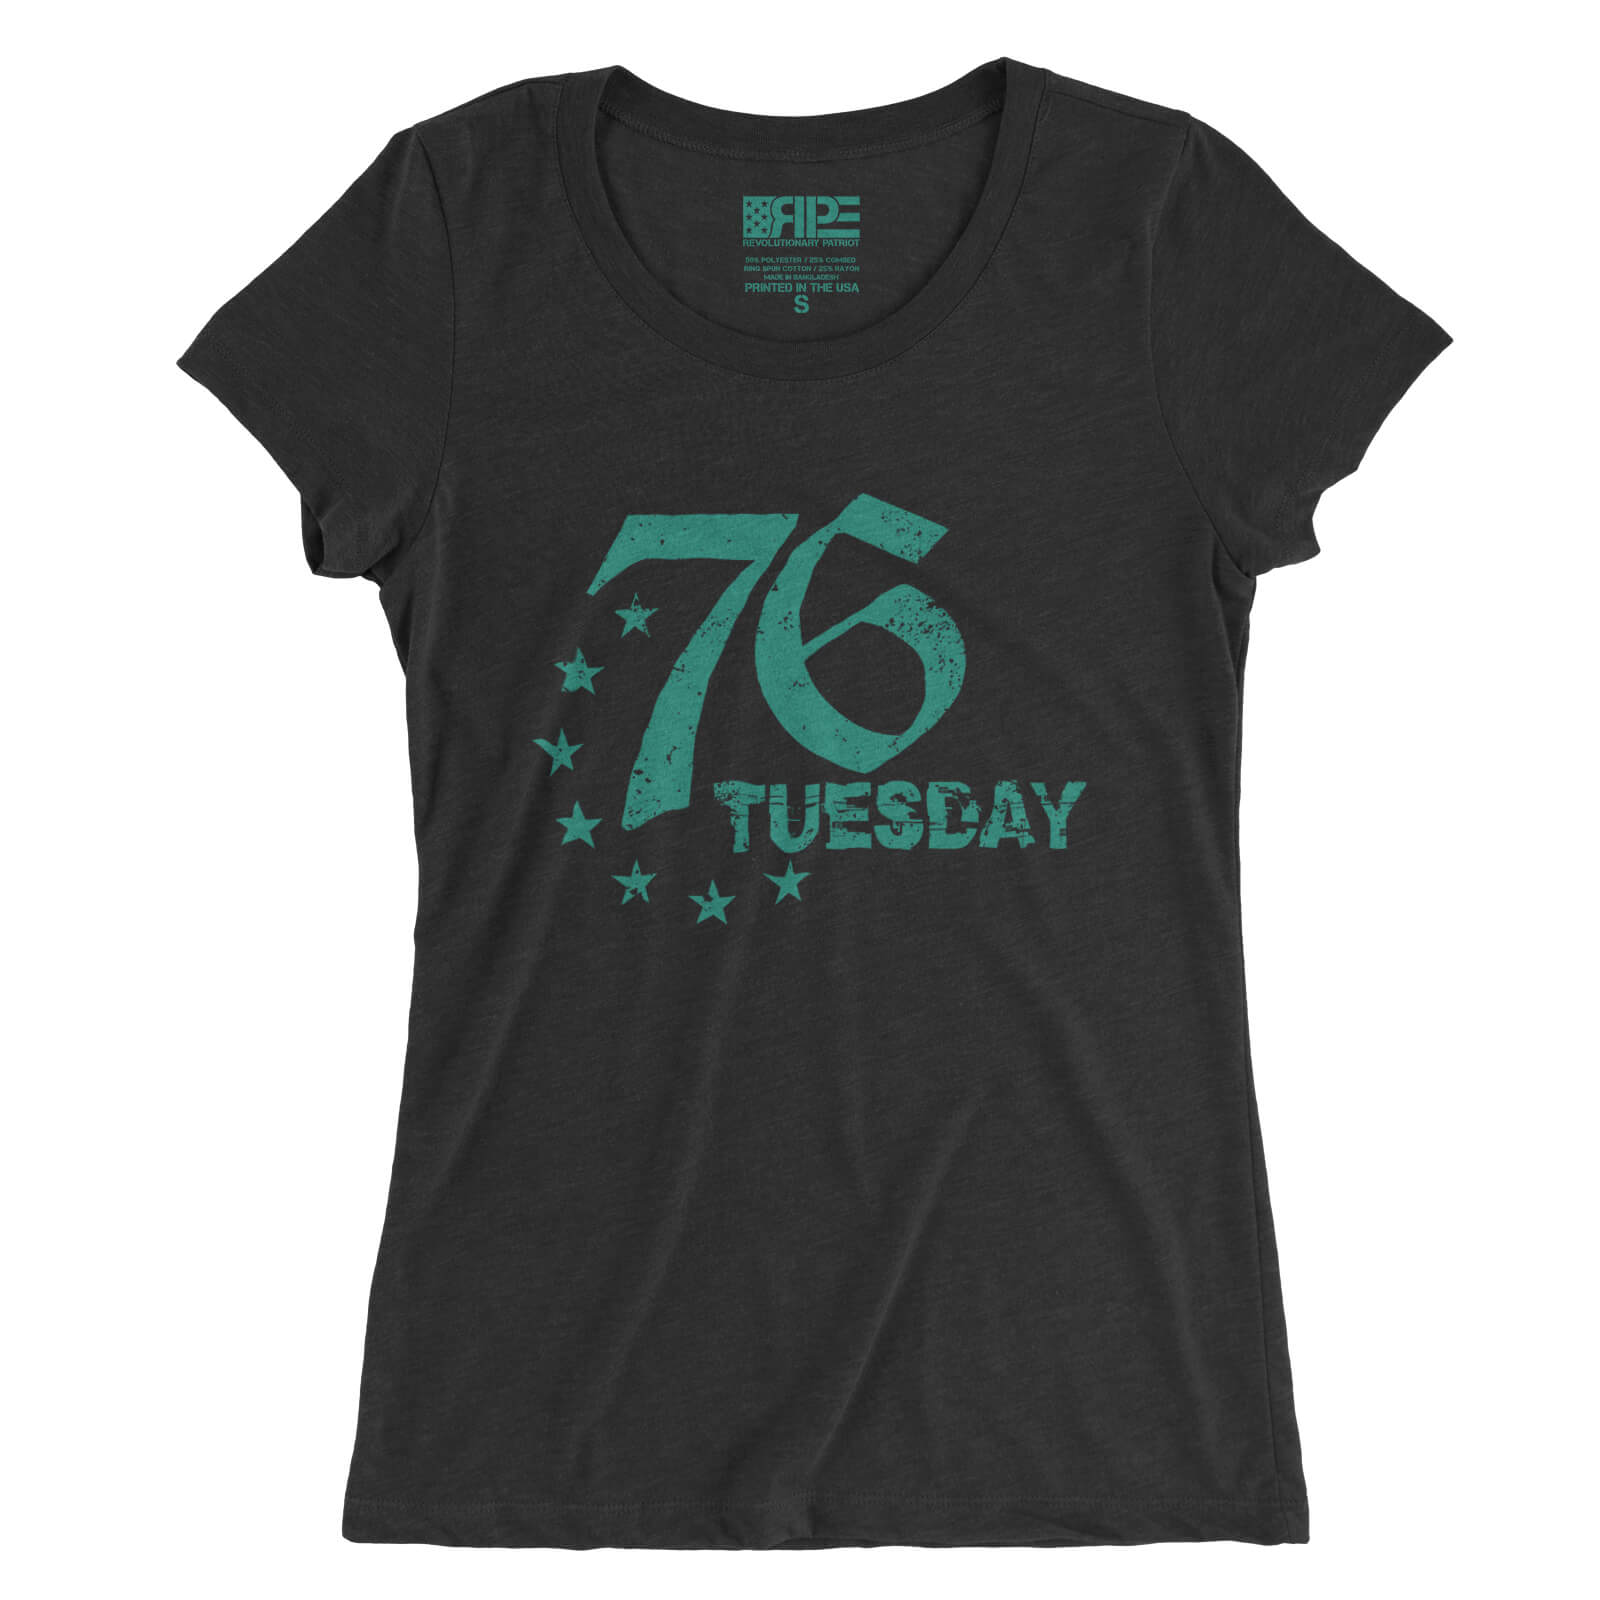 76 Tuesday - (Charcoal Triblend) Aqua